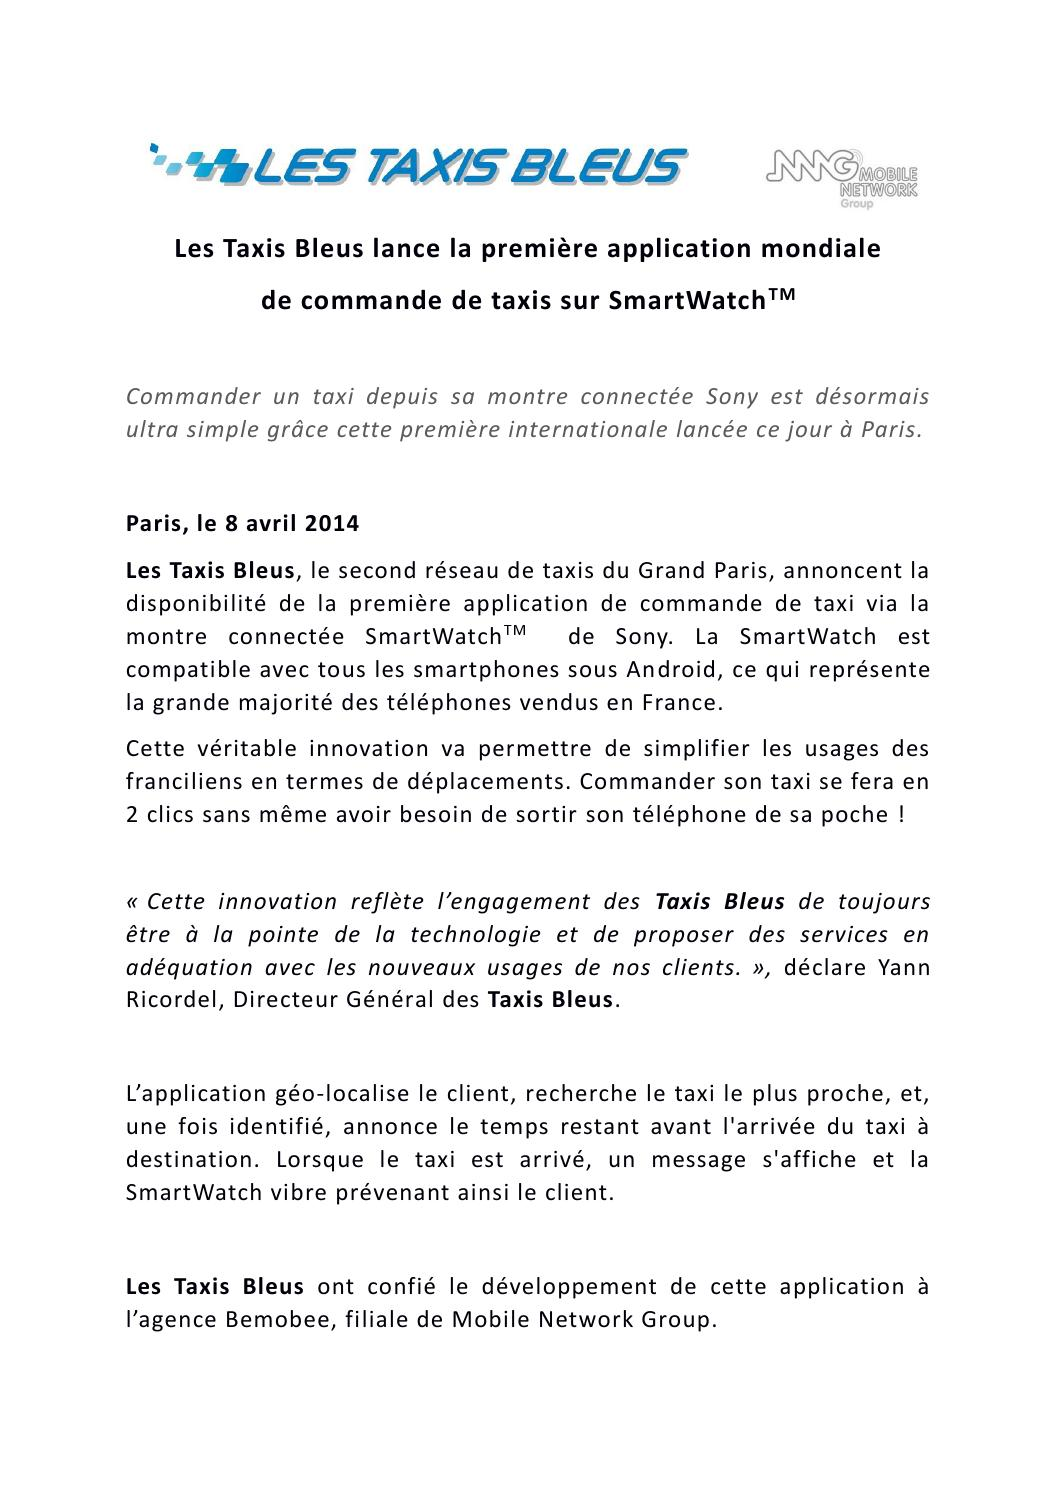 lancement de l 39 application taxis bleus sur smartwatch de sony by taxis bleus issuu. Black Bedroom Furniture Sets. Home Design Ideas